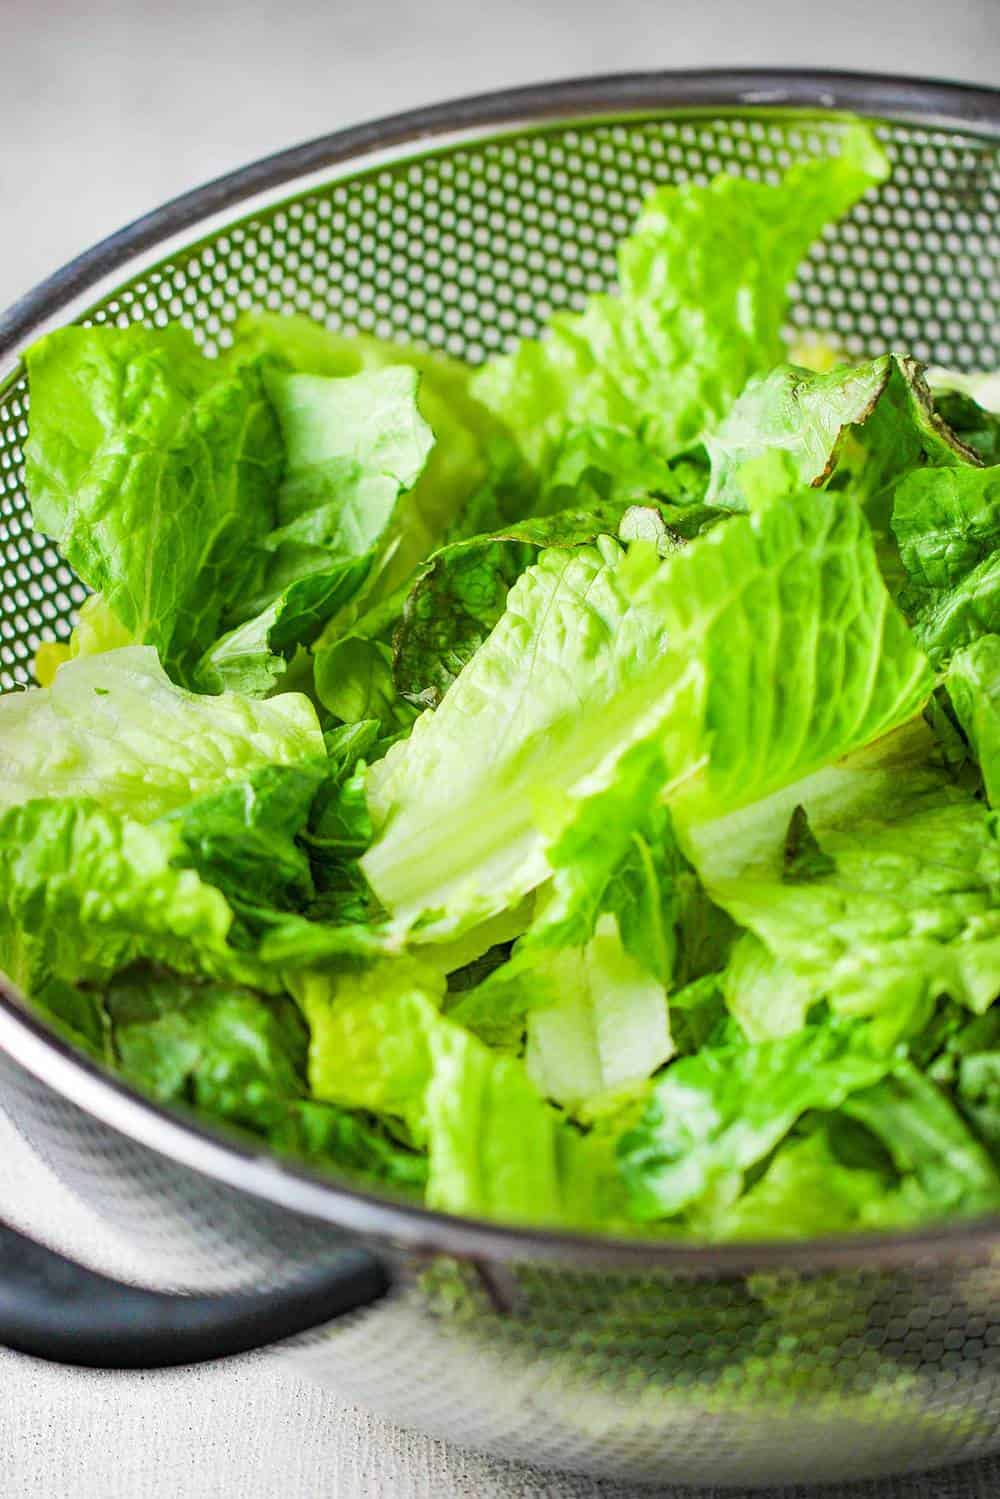 Torn pieces of lettuce in a colander for Caesar's salad